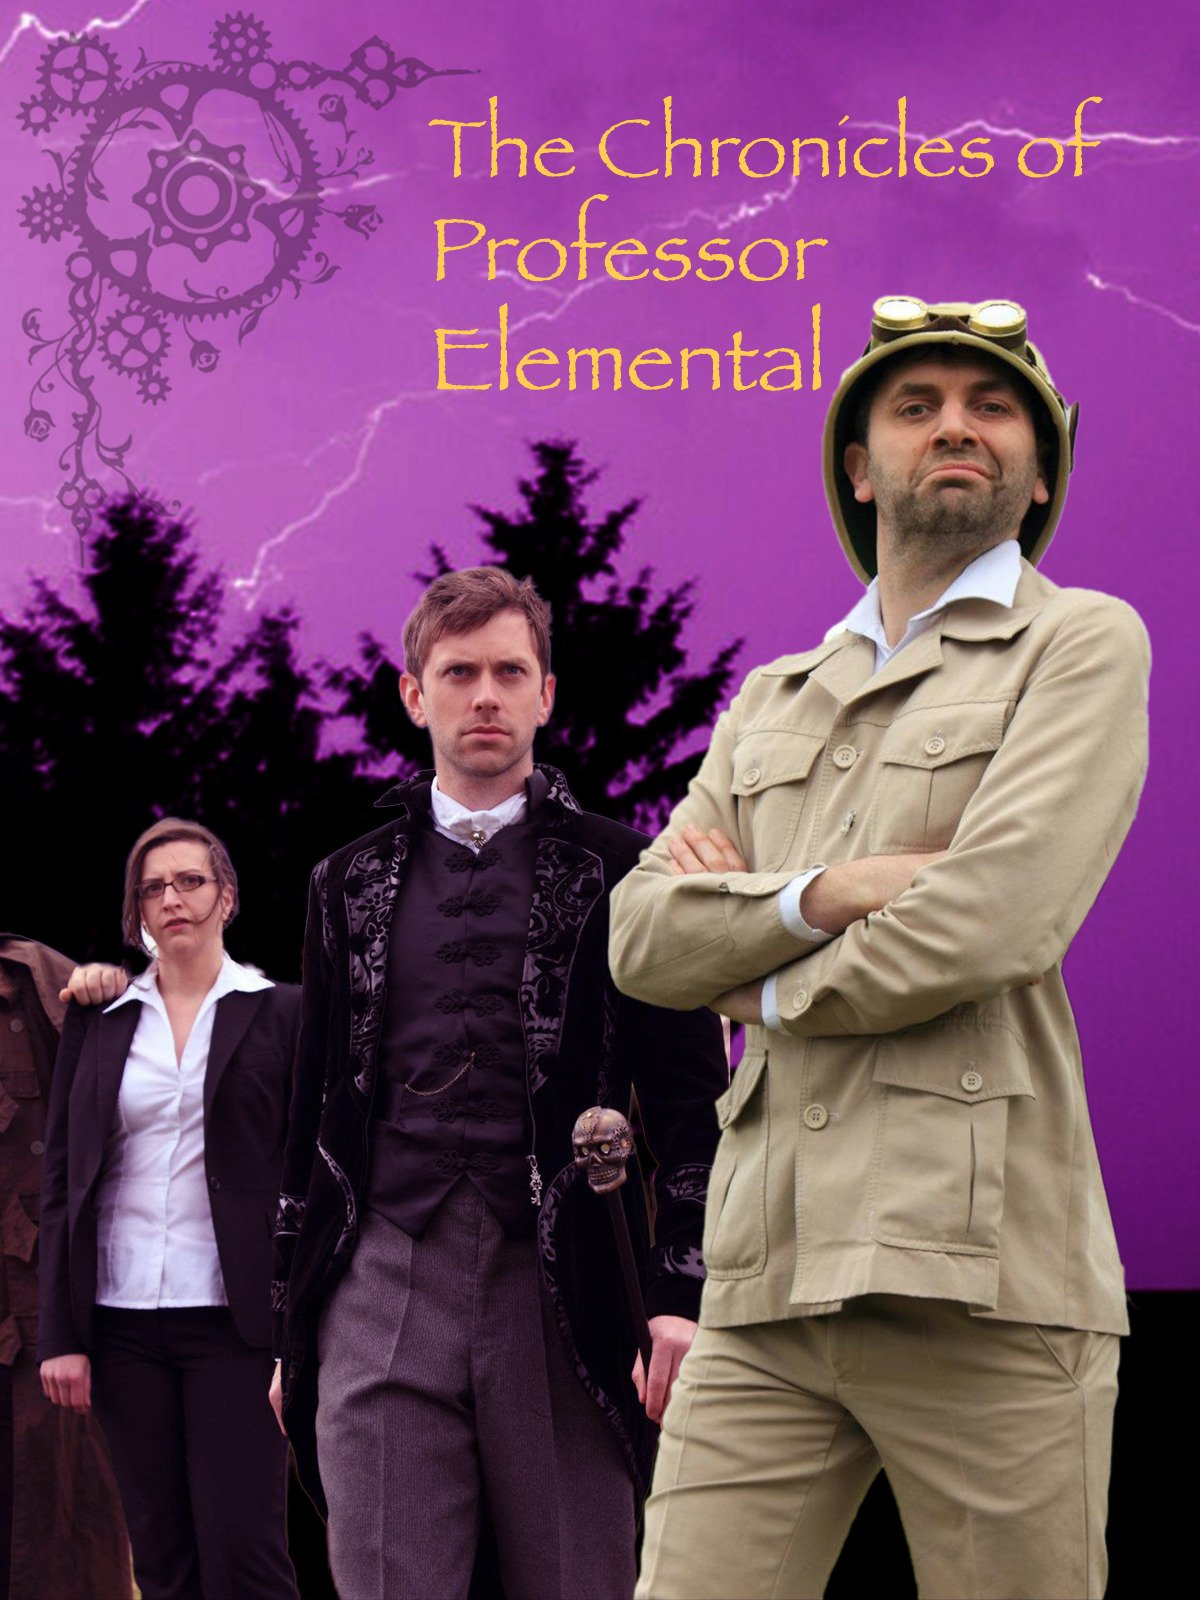 The Chronicles of Professor Elemental